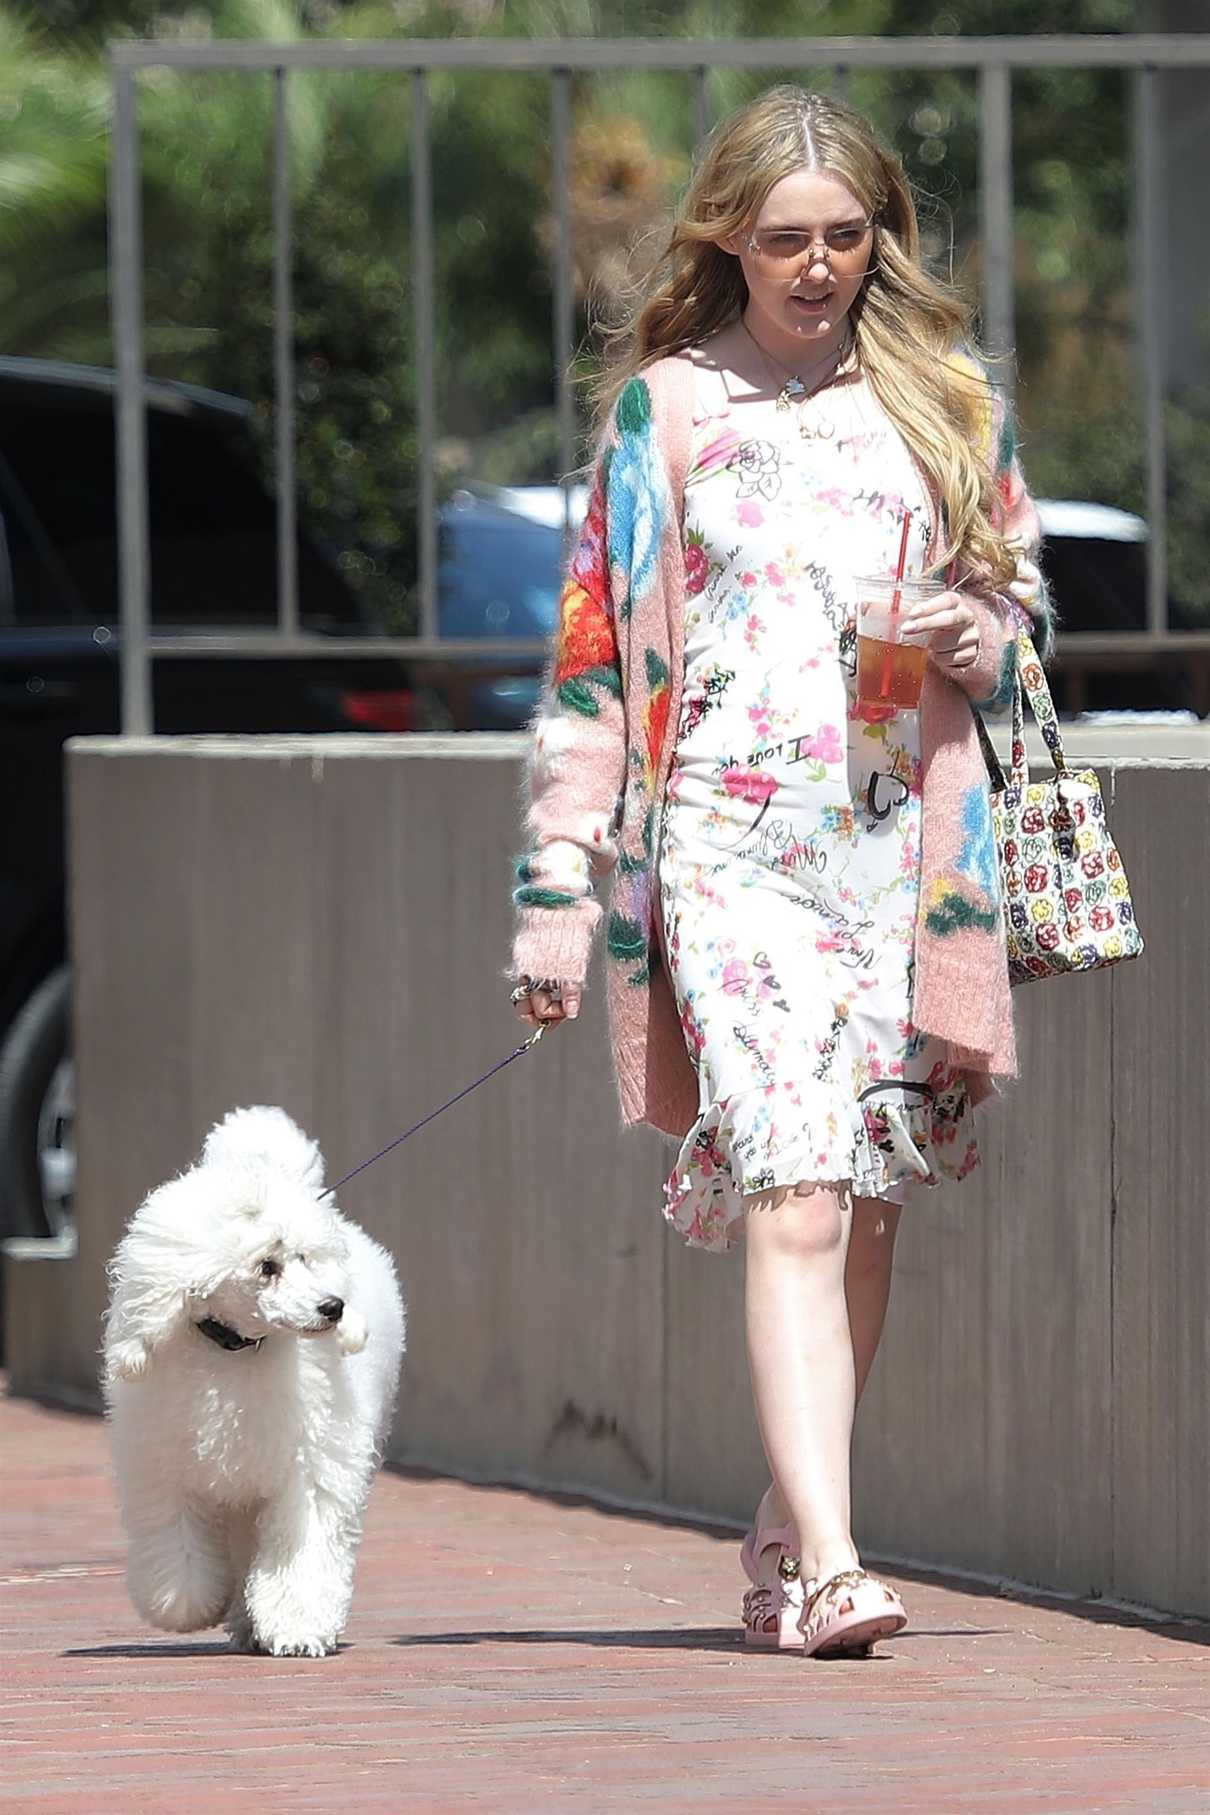 Kathryn Newton Wears a Summer Floral Dress as She Walks Her Dog in Beverly Hills 07/17/2018-2